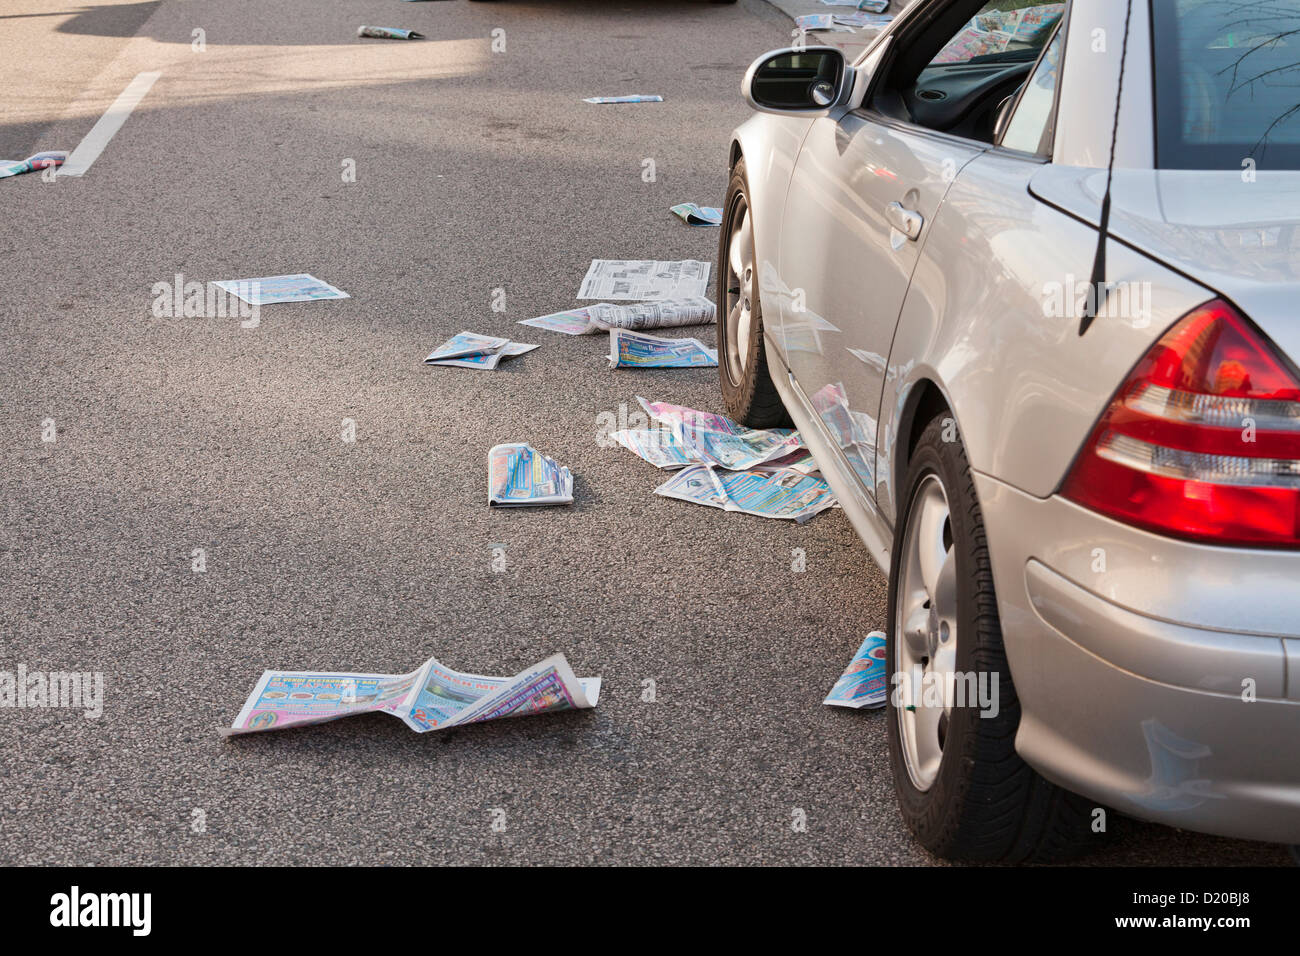 Newspapers littered on street - USA - Stock Image